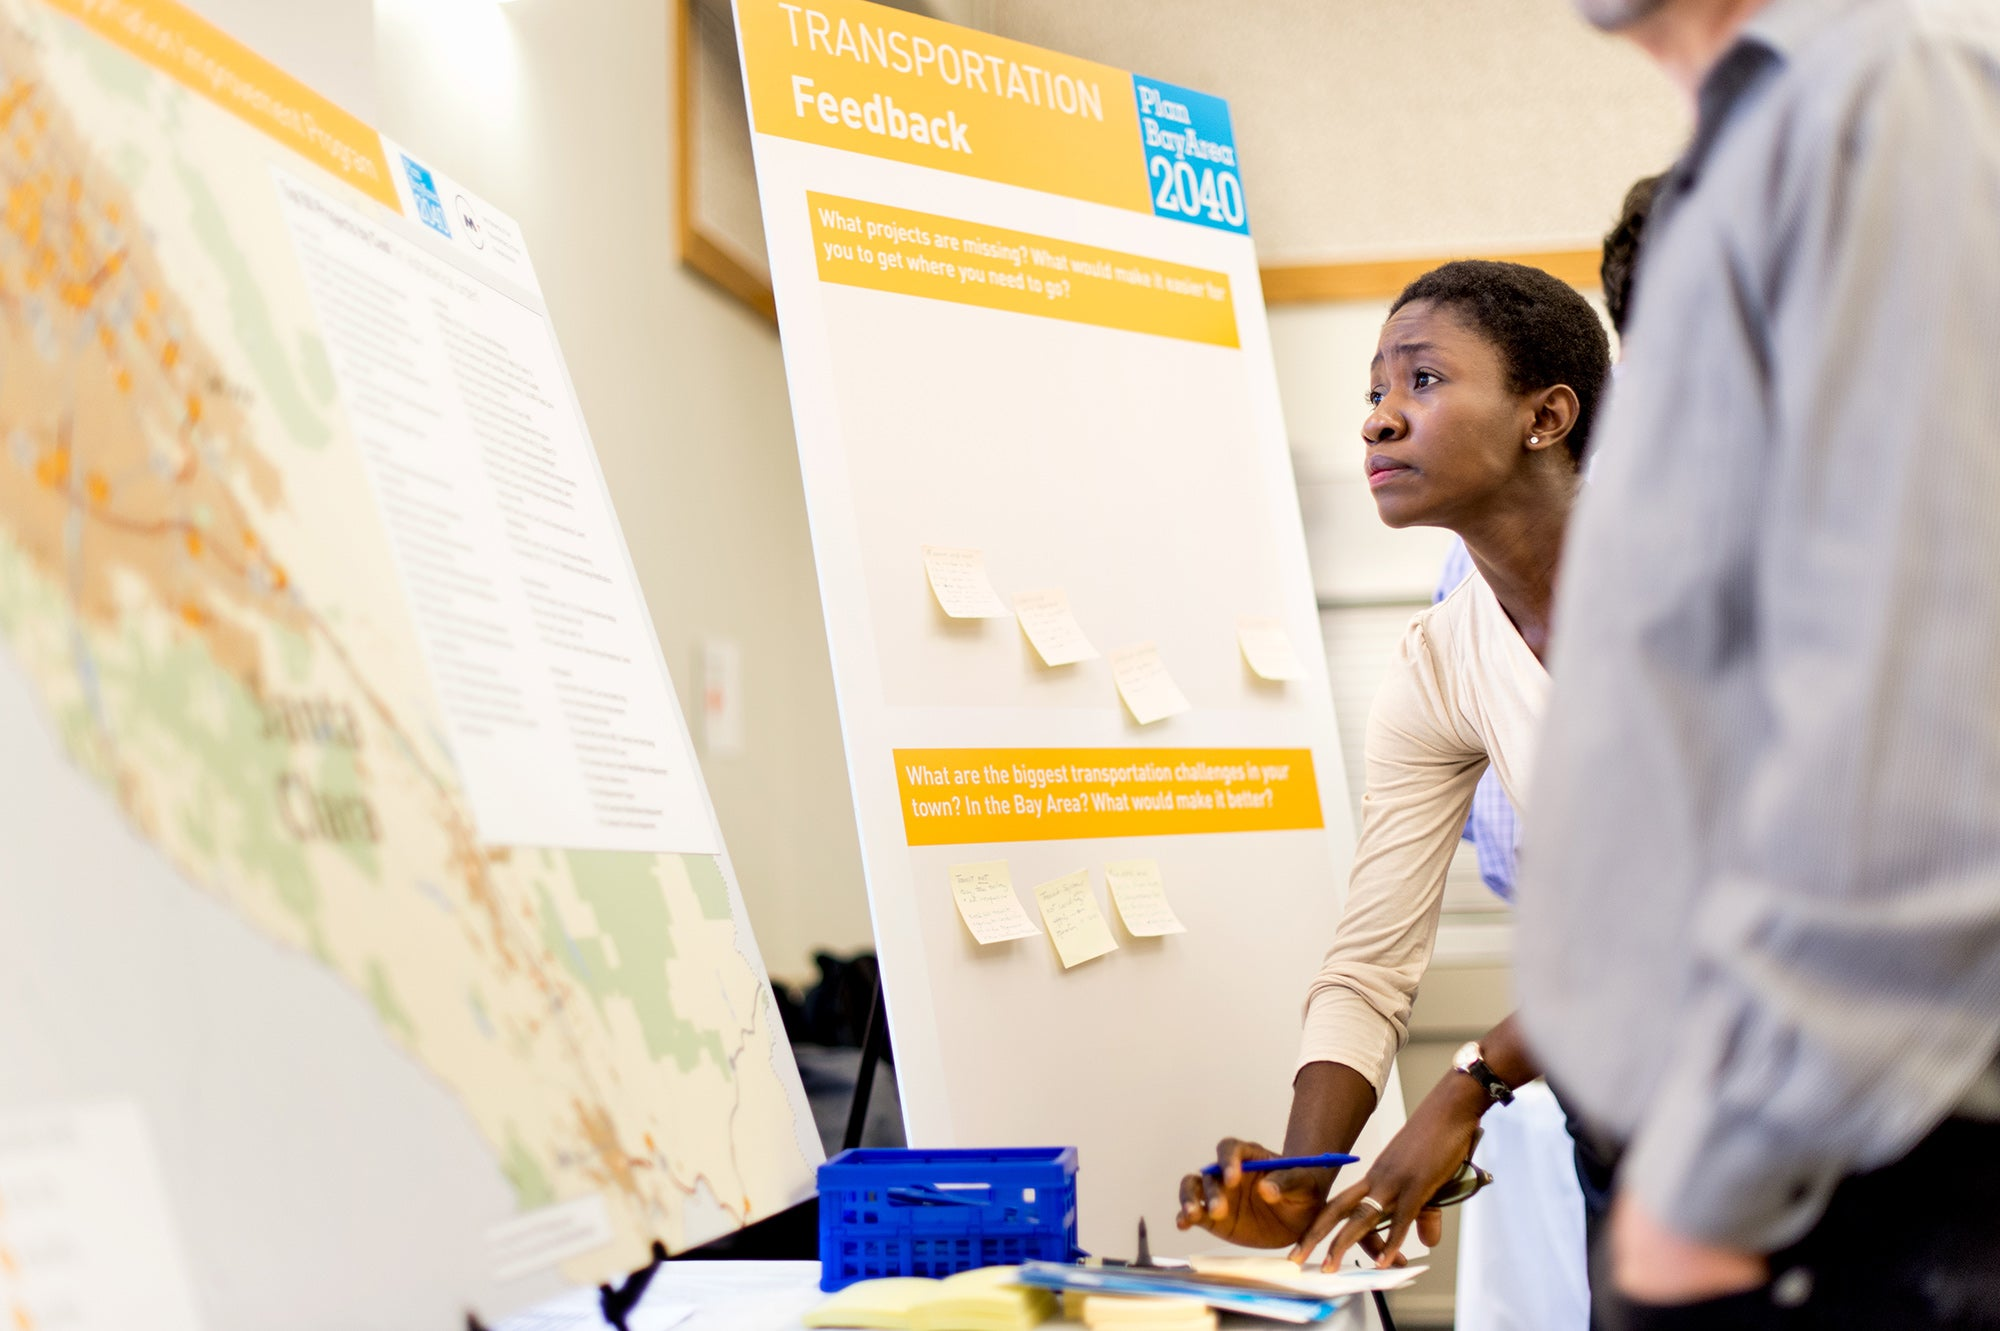 Attendees giving feedback at the Santa Clara County open house